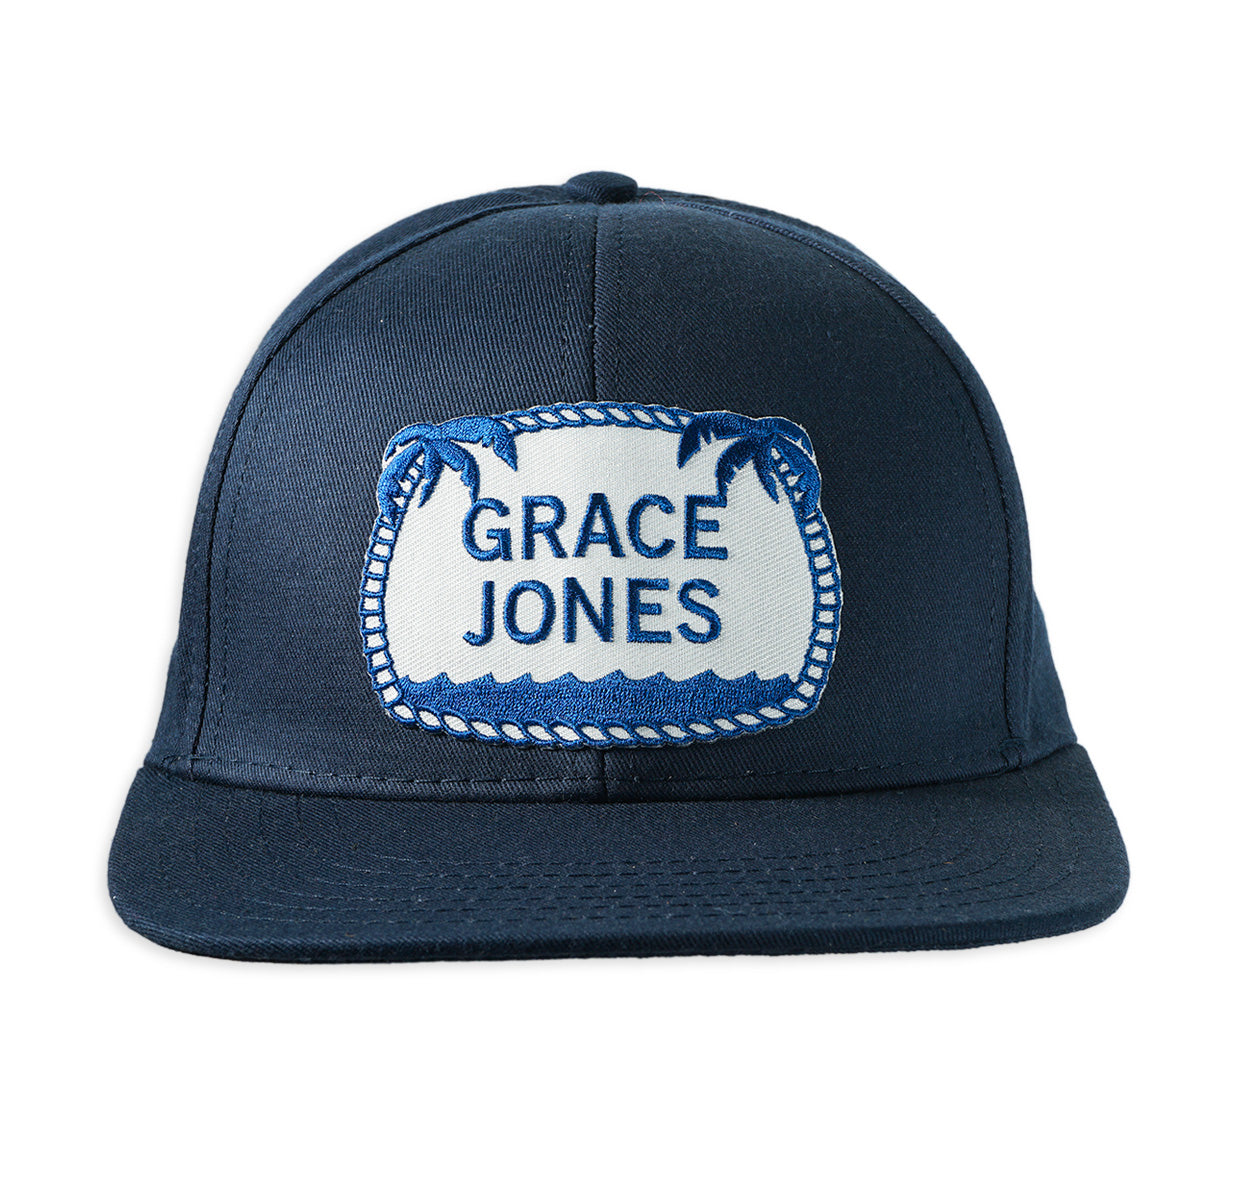 Grace Jones ball cap